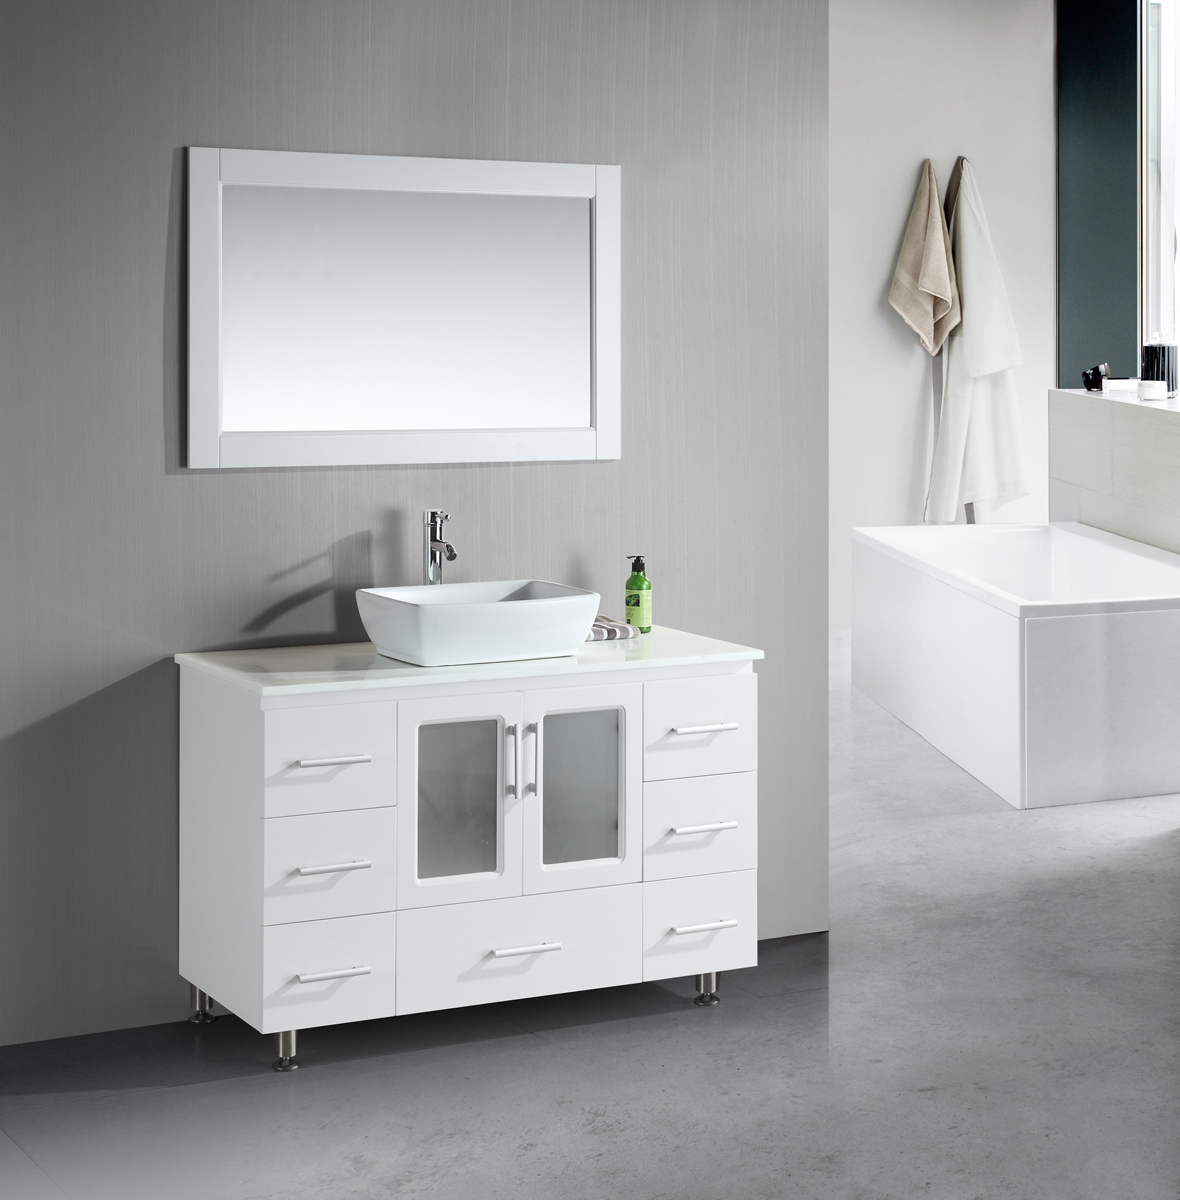 Small bathroom vanities with vessel sinks to create cool for Minimalist small bathroom design